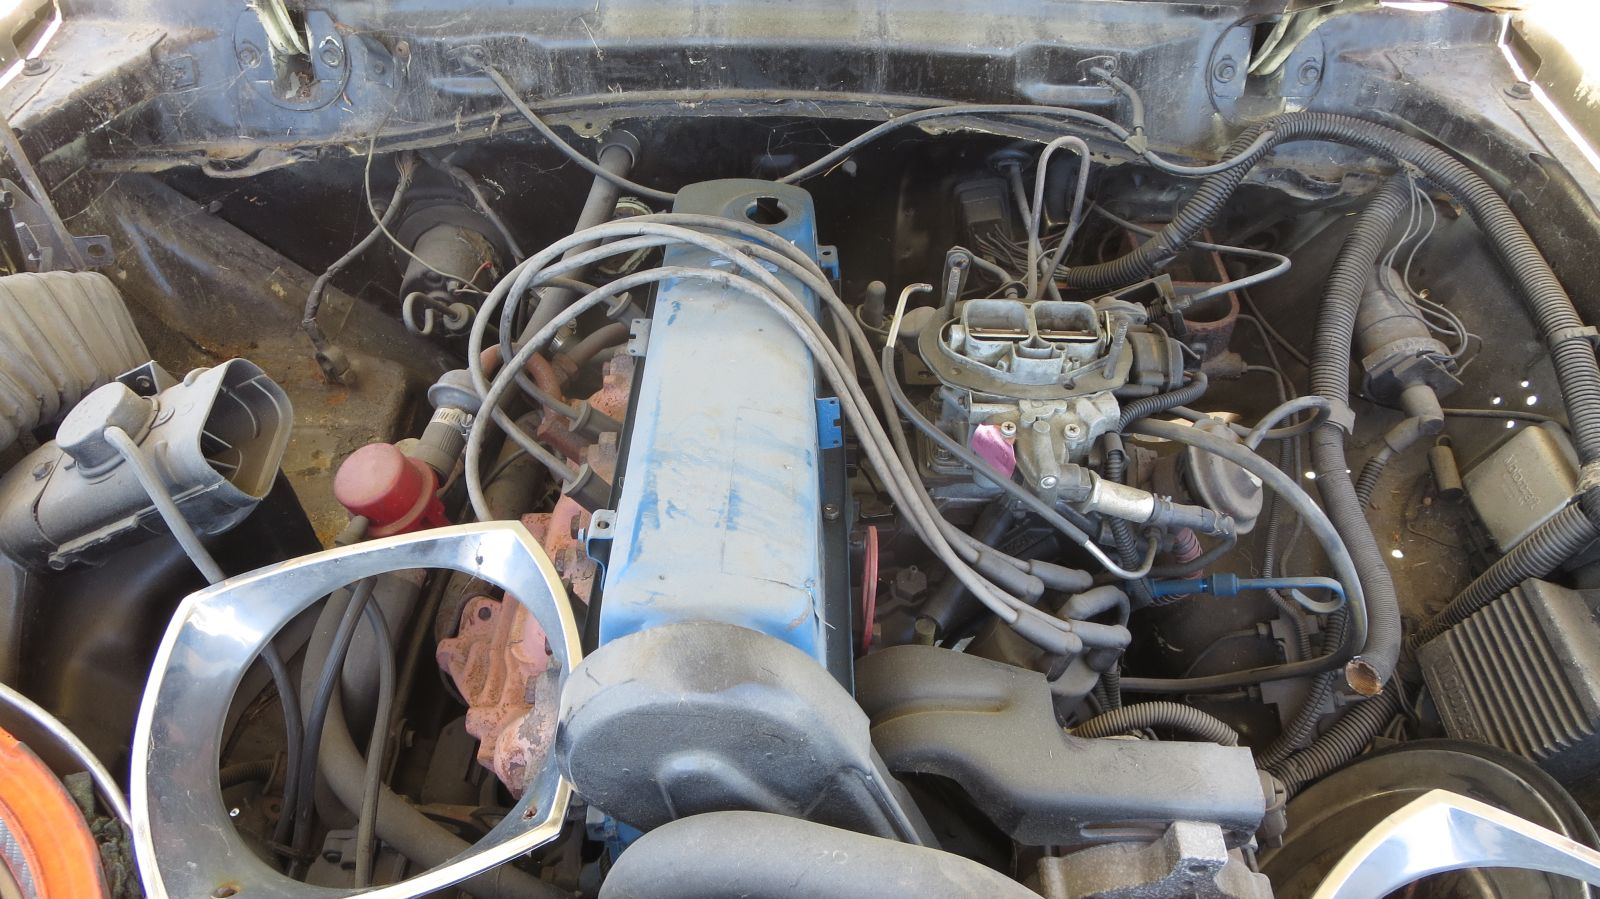 Ford 2300 Pinto engine in 1977 Mustang